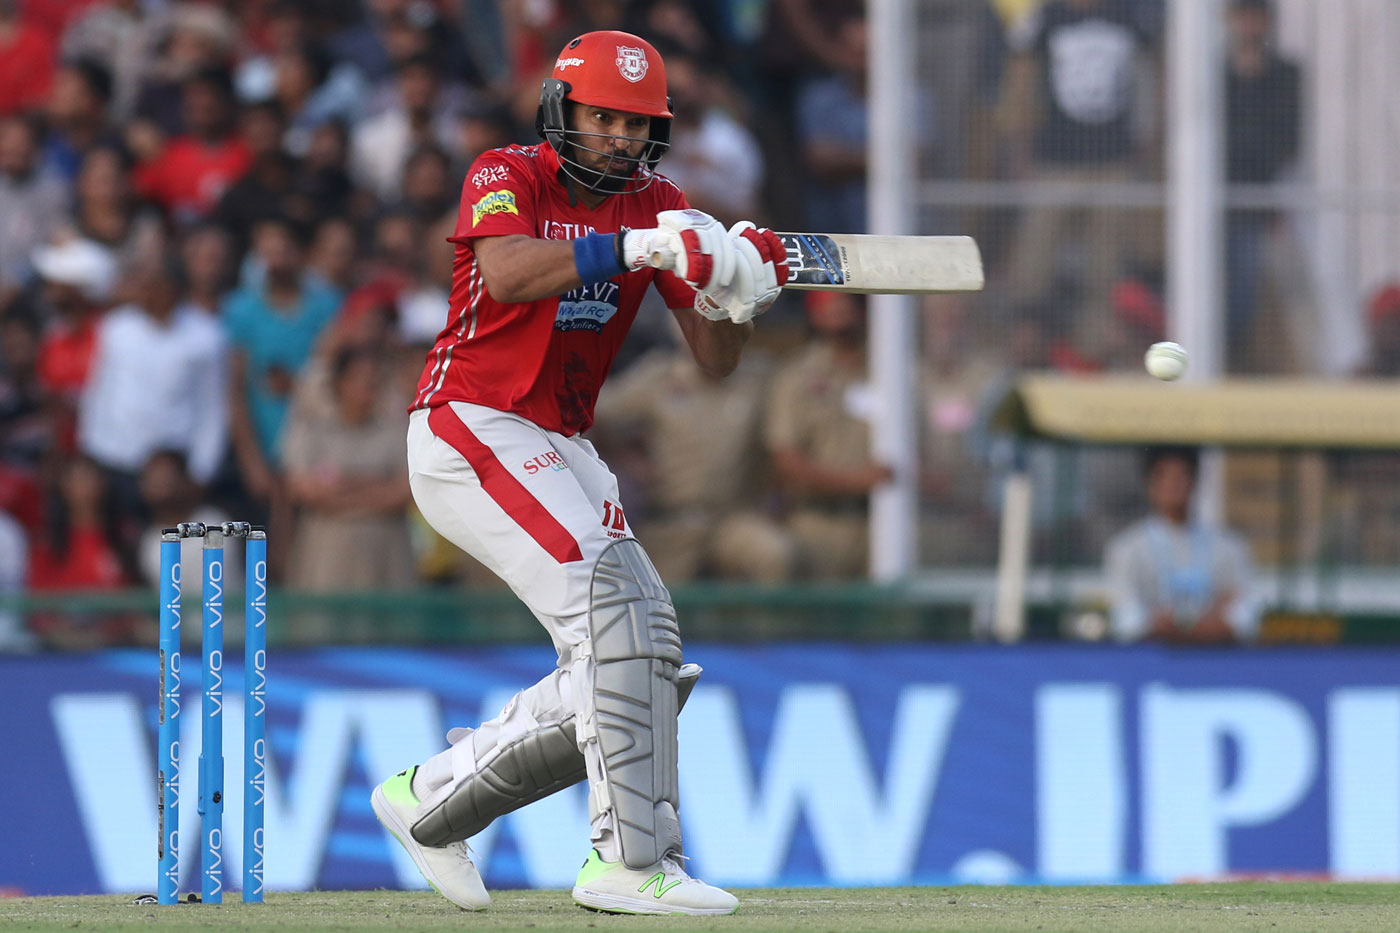 Yuvraj Singh plays a shot for KXIP In IPL 11. (Image: cricketaddictor.com)